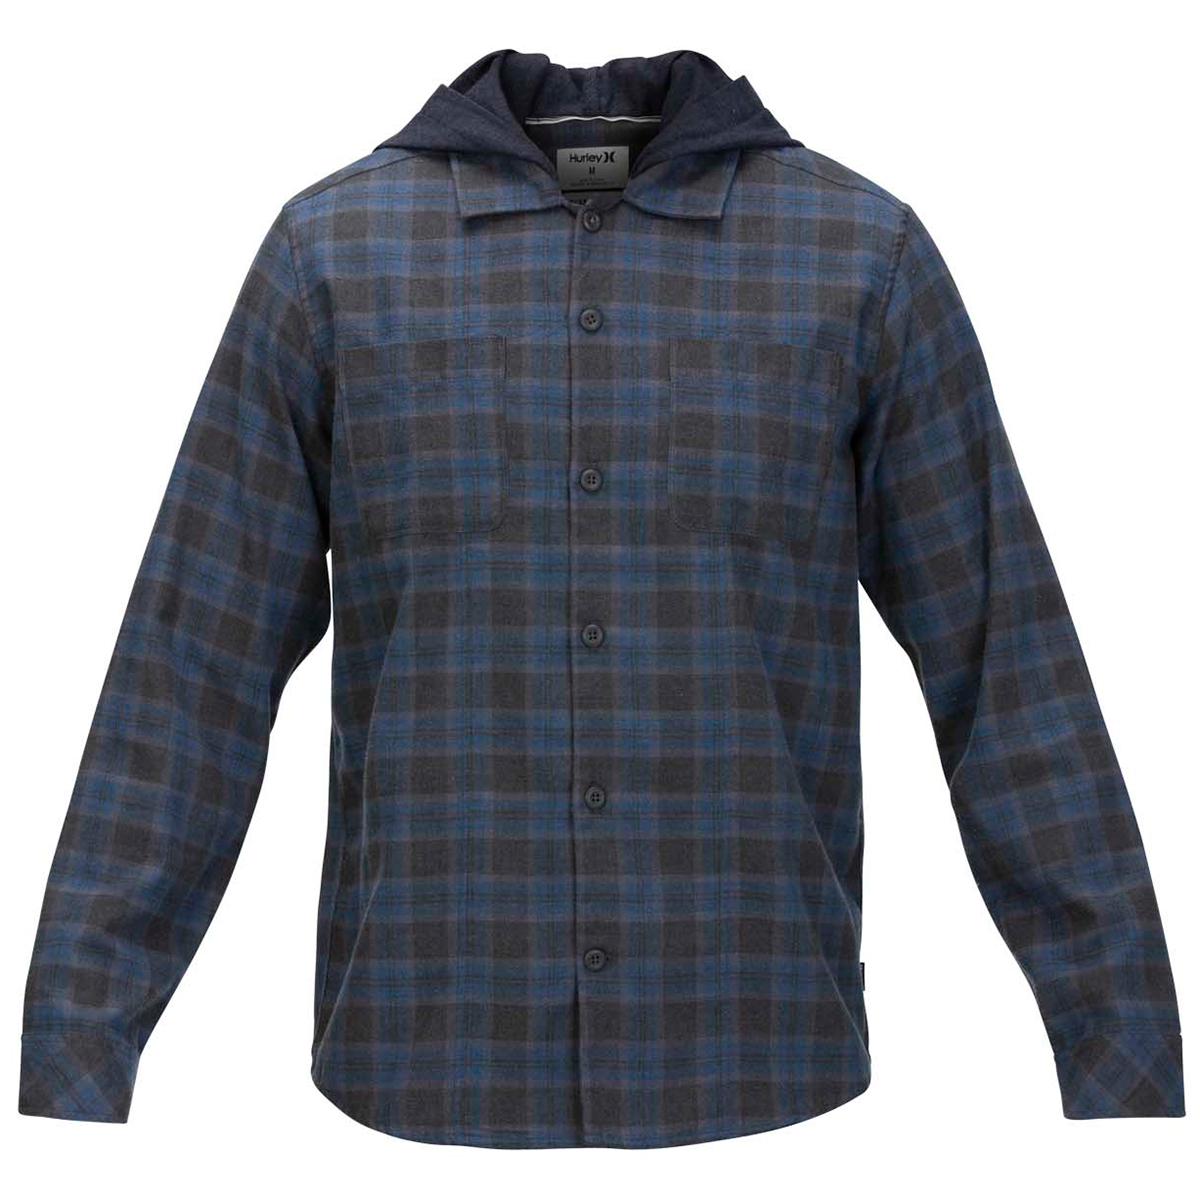 Hurley Men's Crowley Hooded Long-Sleeve Shirt - Blue, L